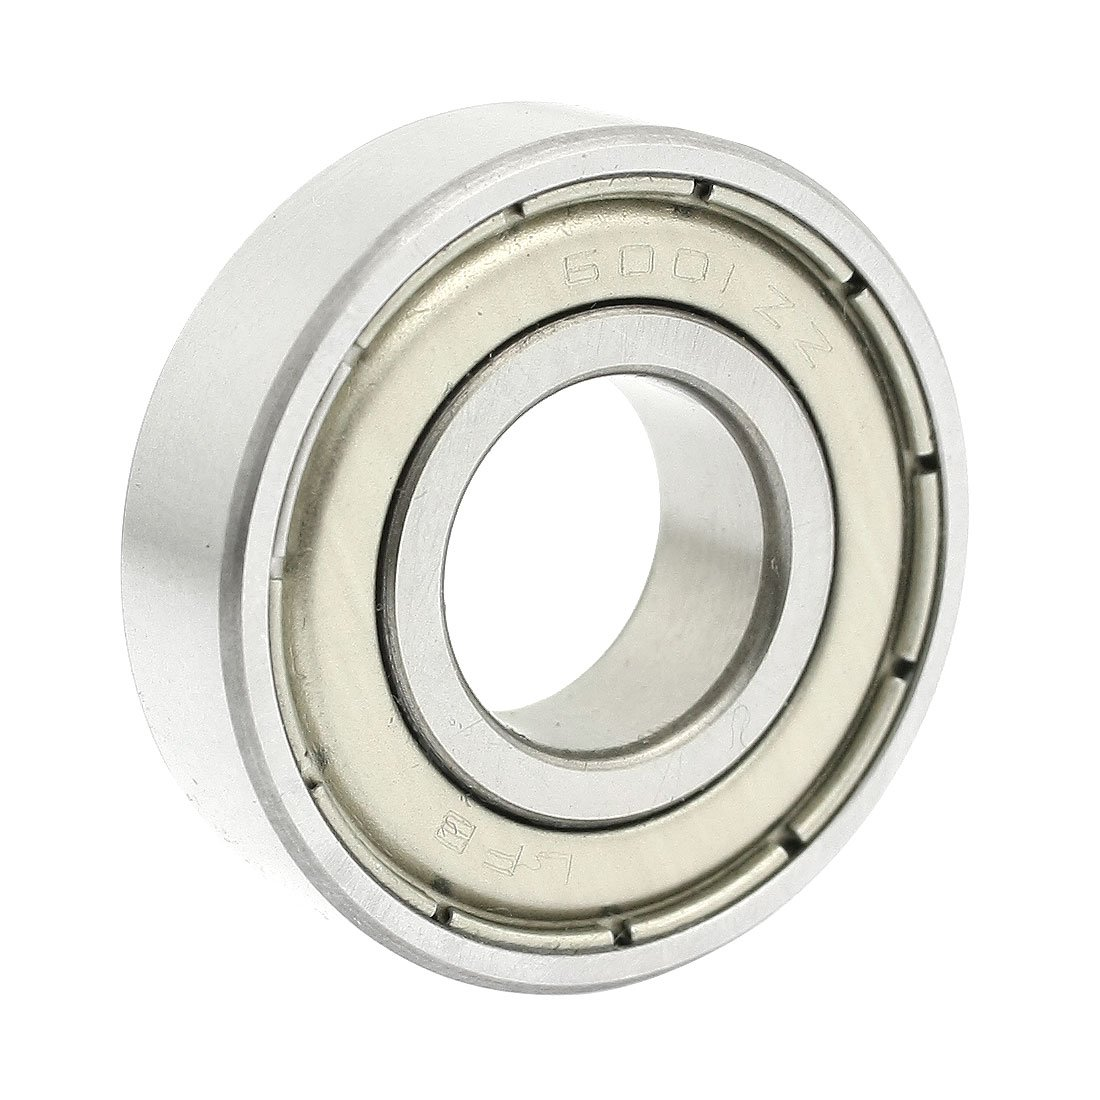 Brand New 6001ZZ Double Shielded Deep Groove <font><b>Ball</b></font> <font><b>Bearings</b></font> <font><b>28mm</b></font> x 12mm x 8mm image